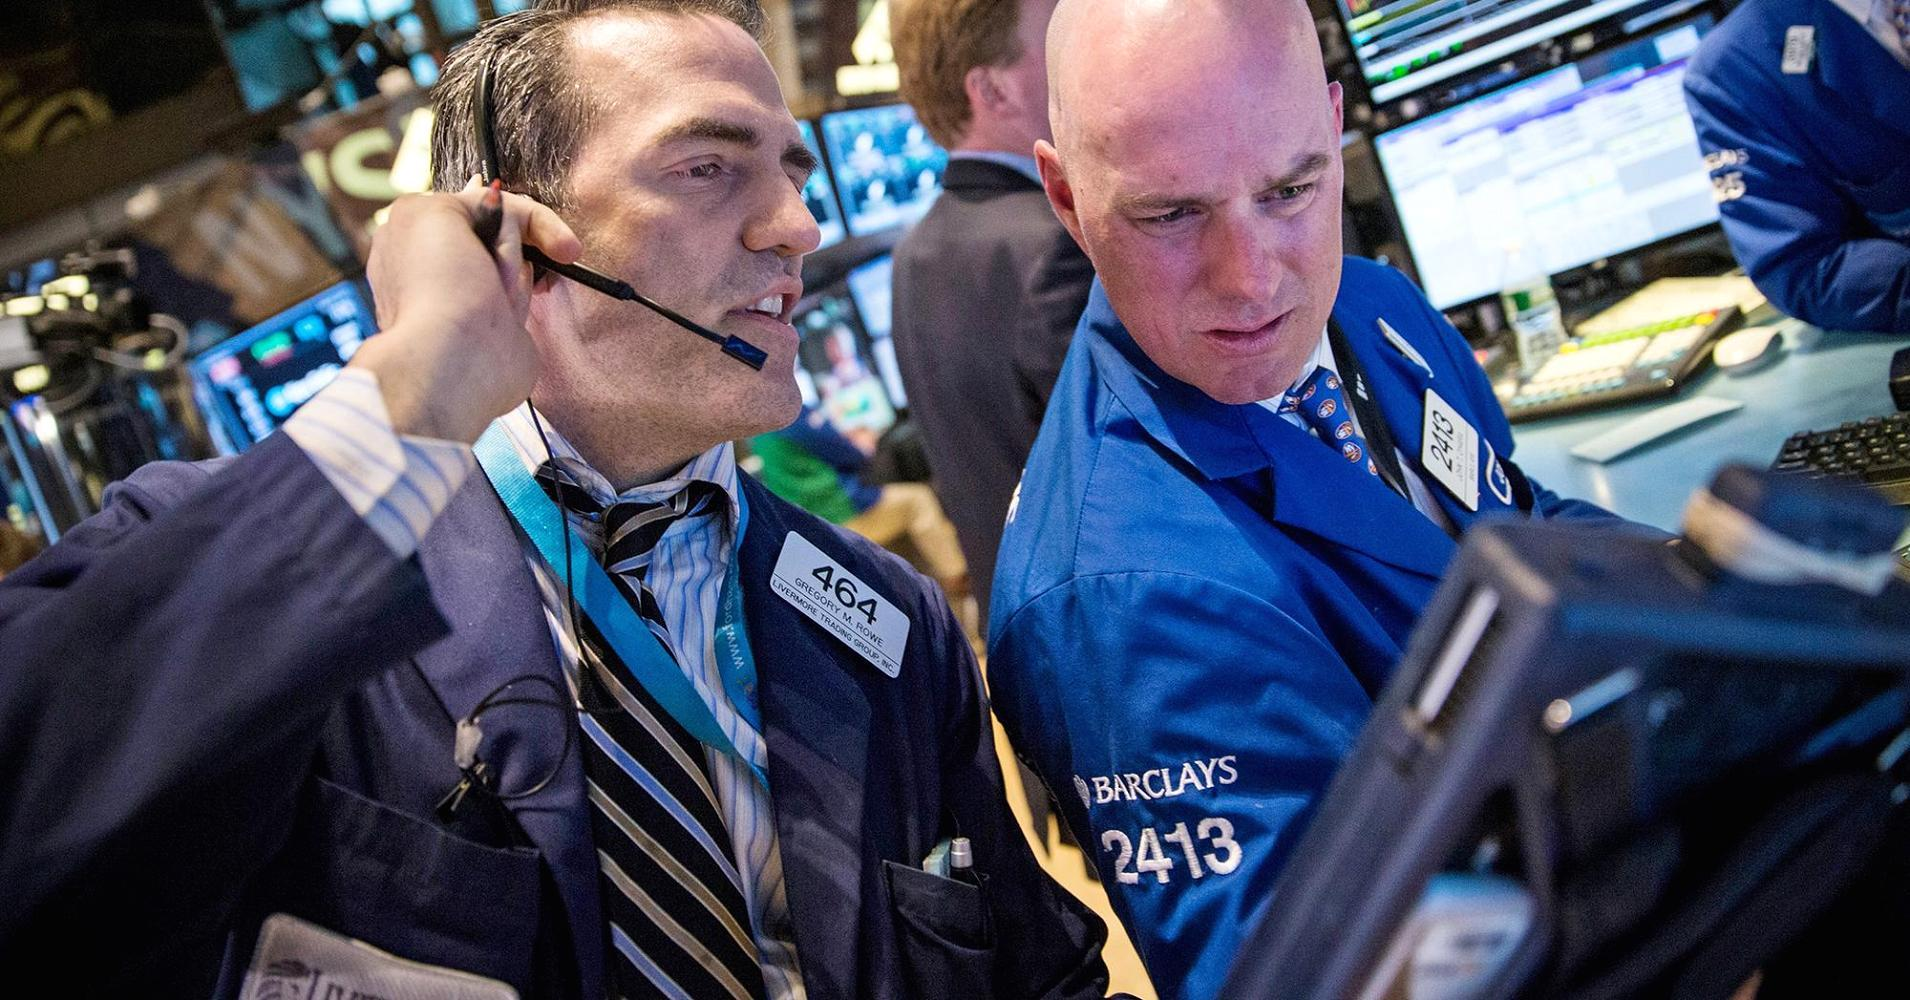 Stocks fail to hold momentum from oil gains; earnings eyed